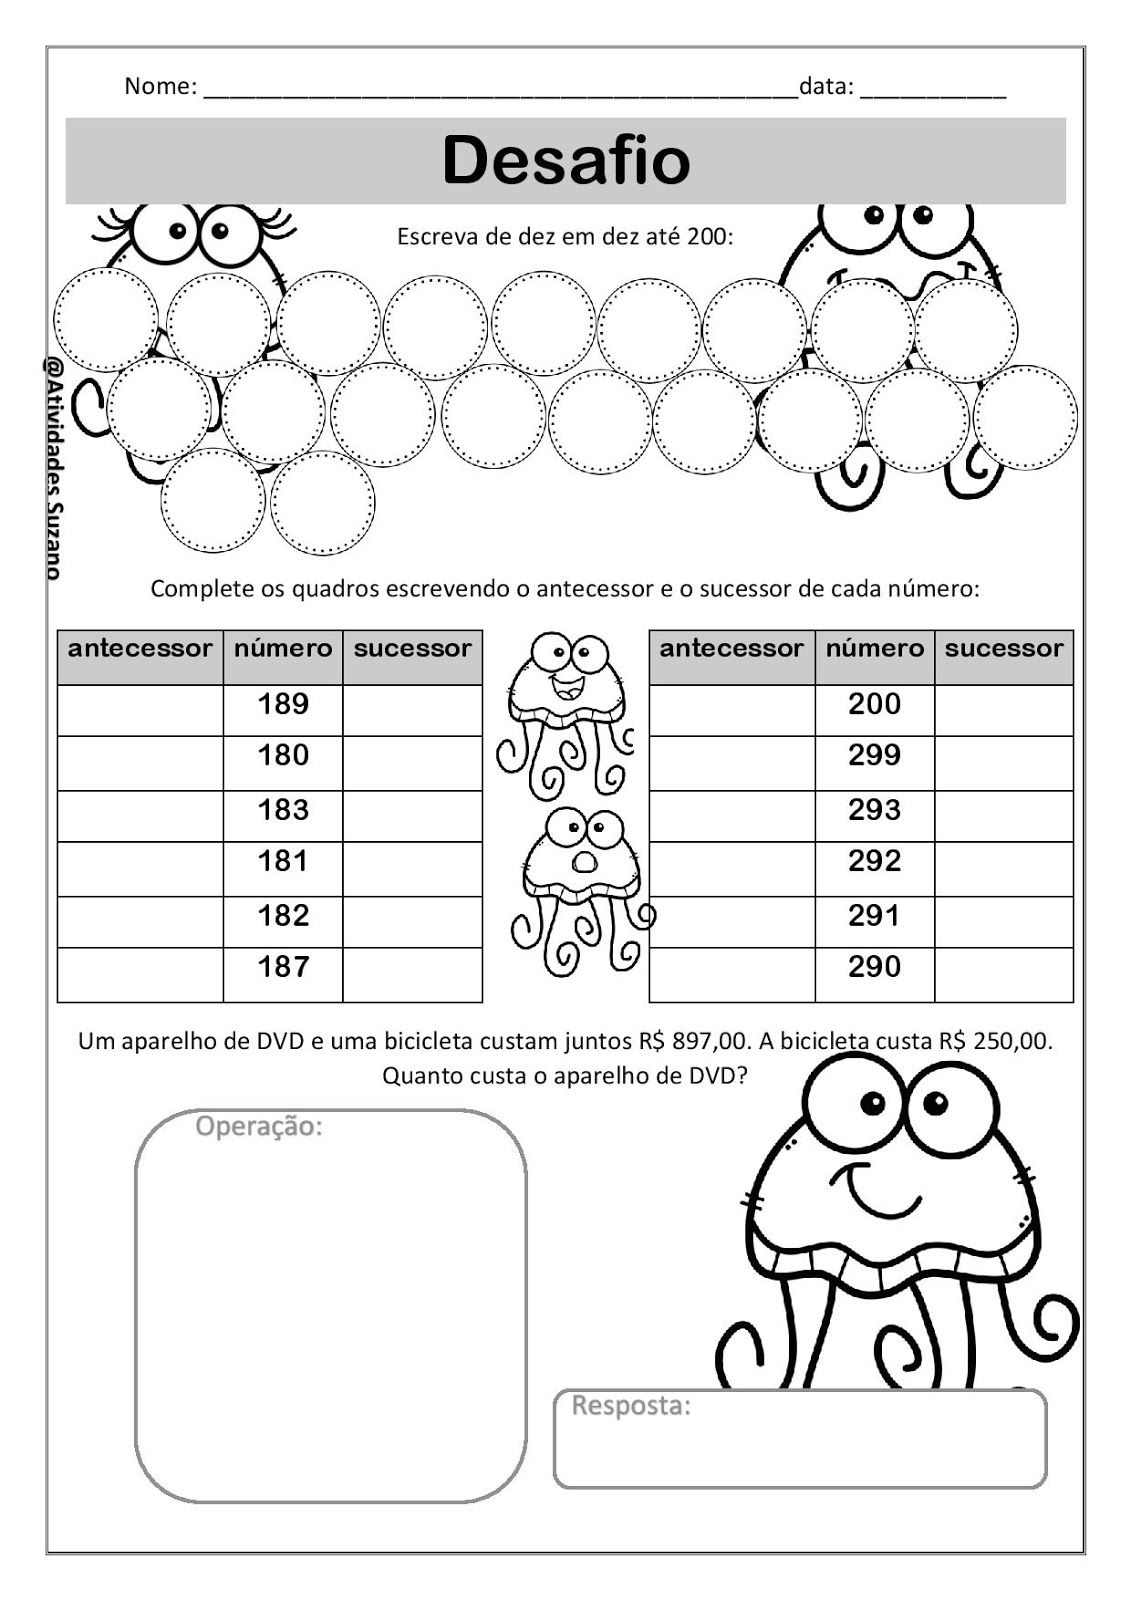 Pencil control worksheet for kids 187 tracing line worksheet for kids - Desafio Matematico 4 Ano Page 002 Jpg 1131